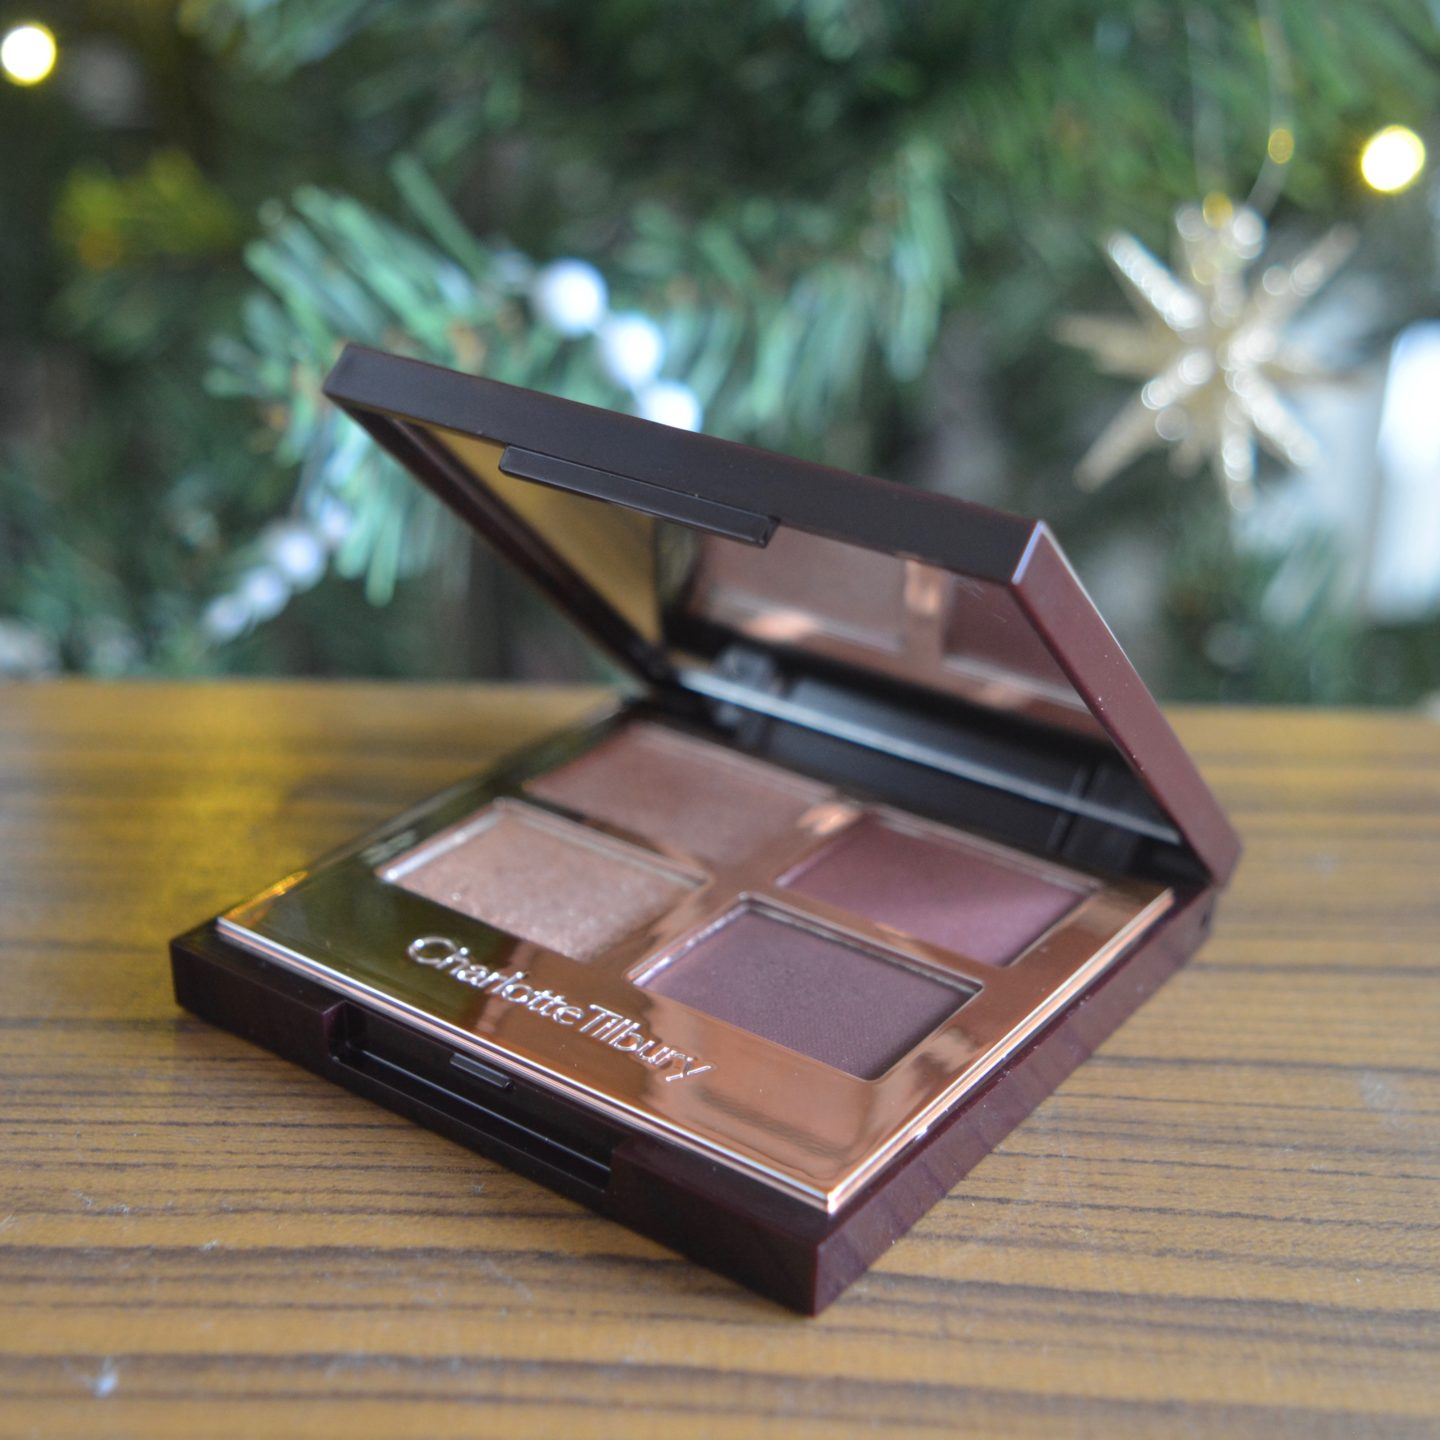 Glowy Make Up Edit - Charlotte Tilbury eyeshadow palette